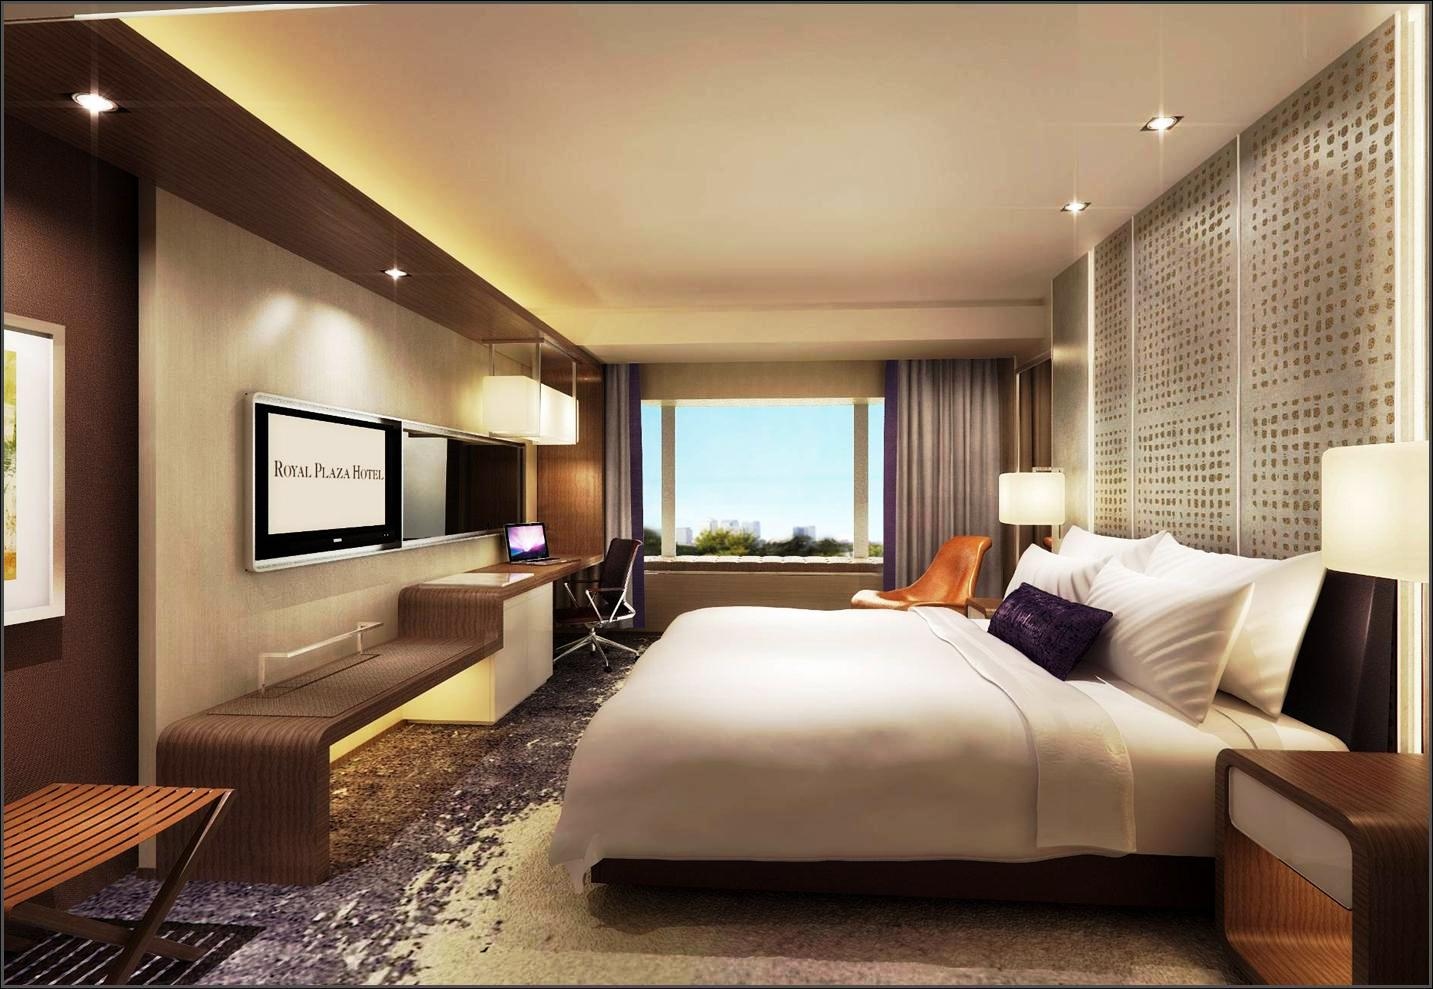 Top 10 Most Expensive Hotel in Manhattan